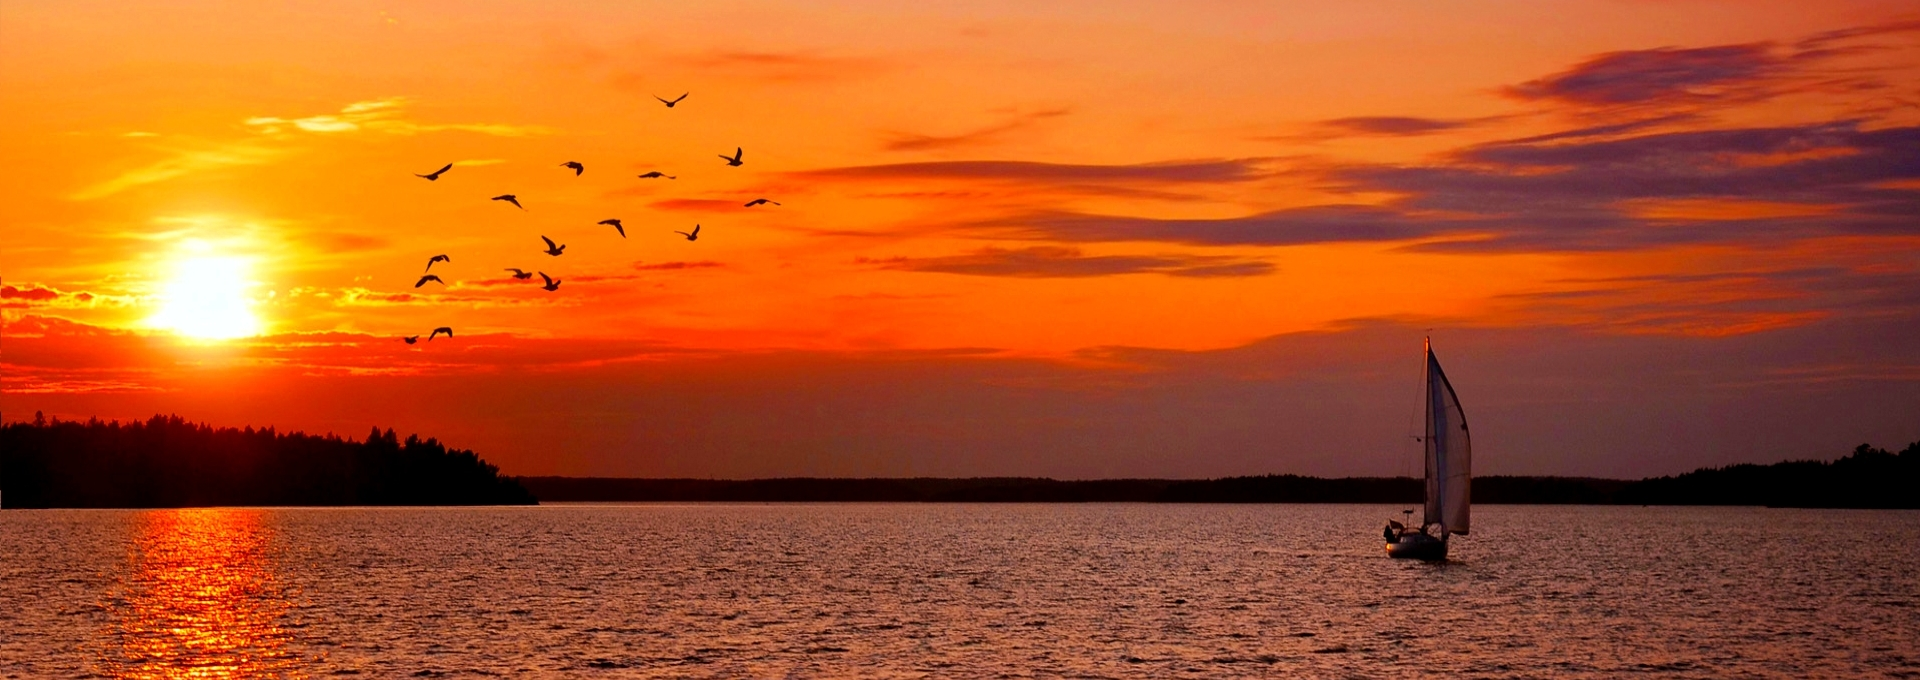 Sailboat at sunset with birds, Sweden